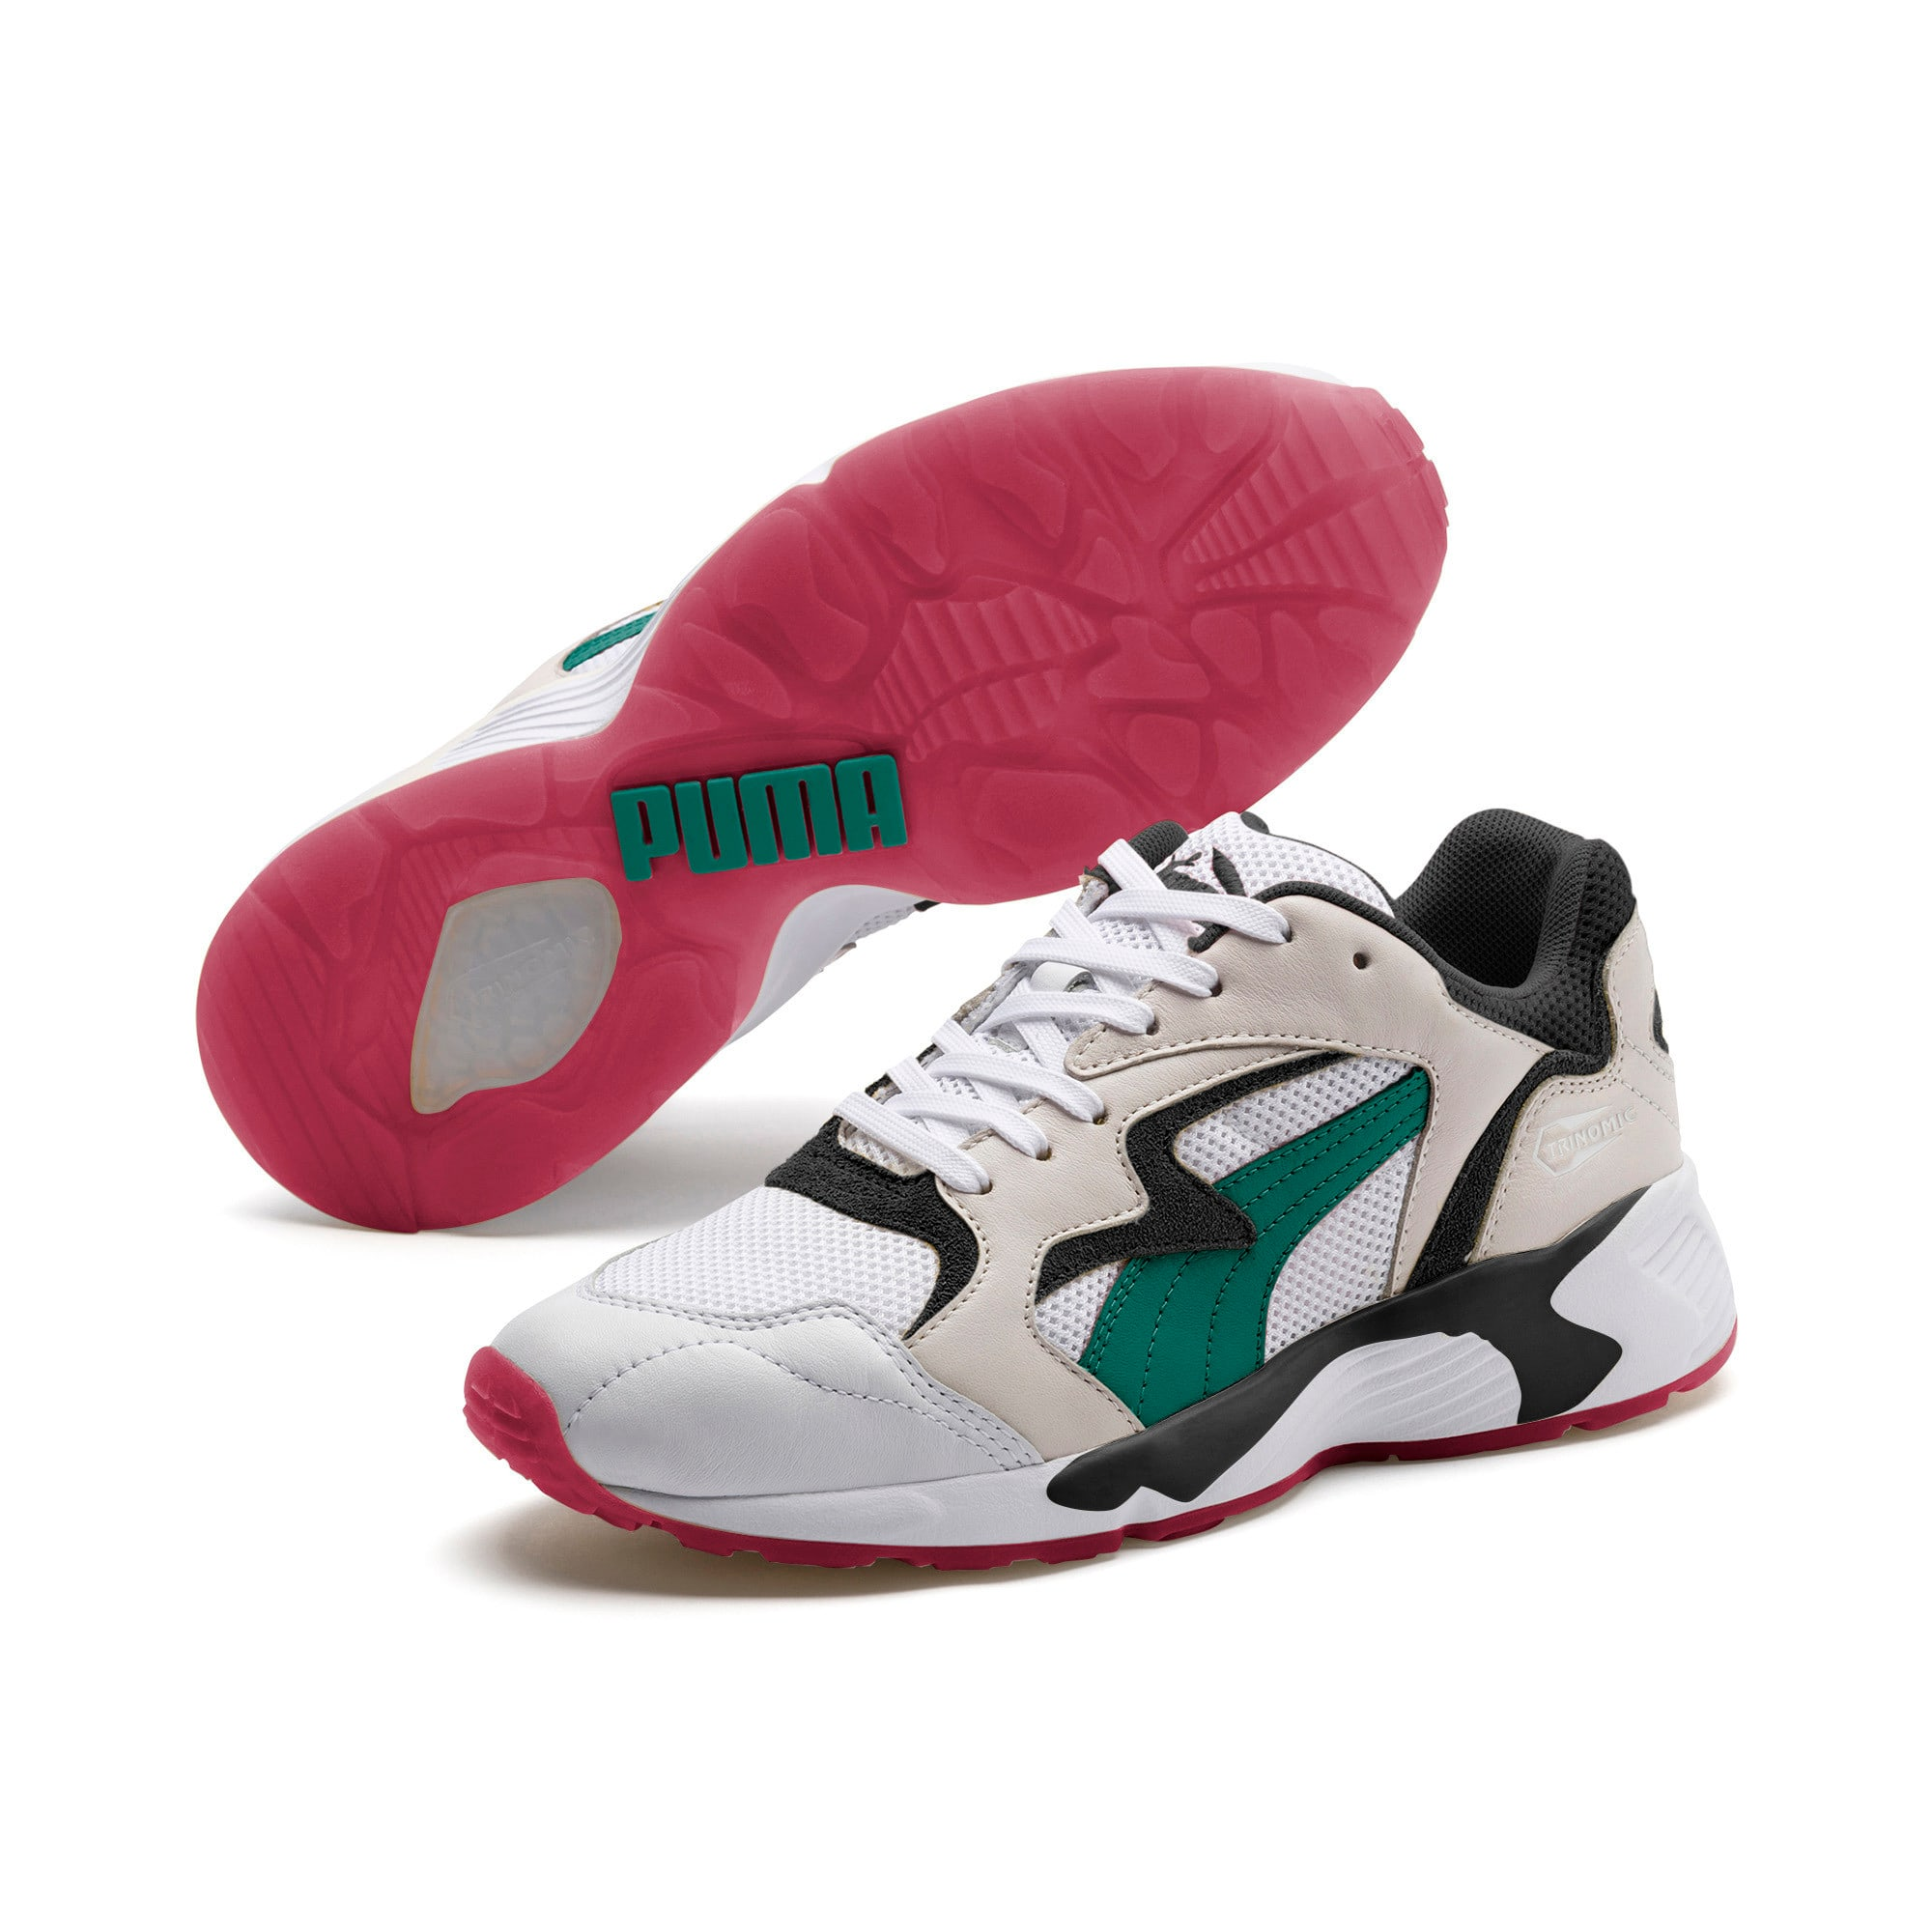 Thumbnail 2 of Prevail Classic Trainers, Puma White-Teal Green, medium